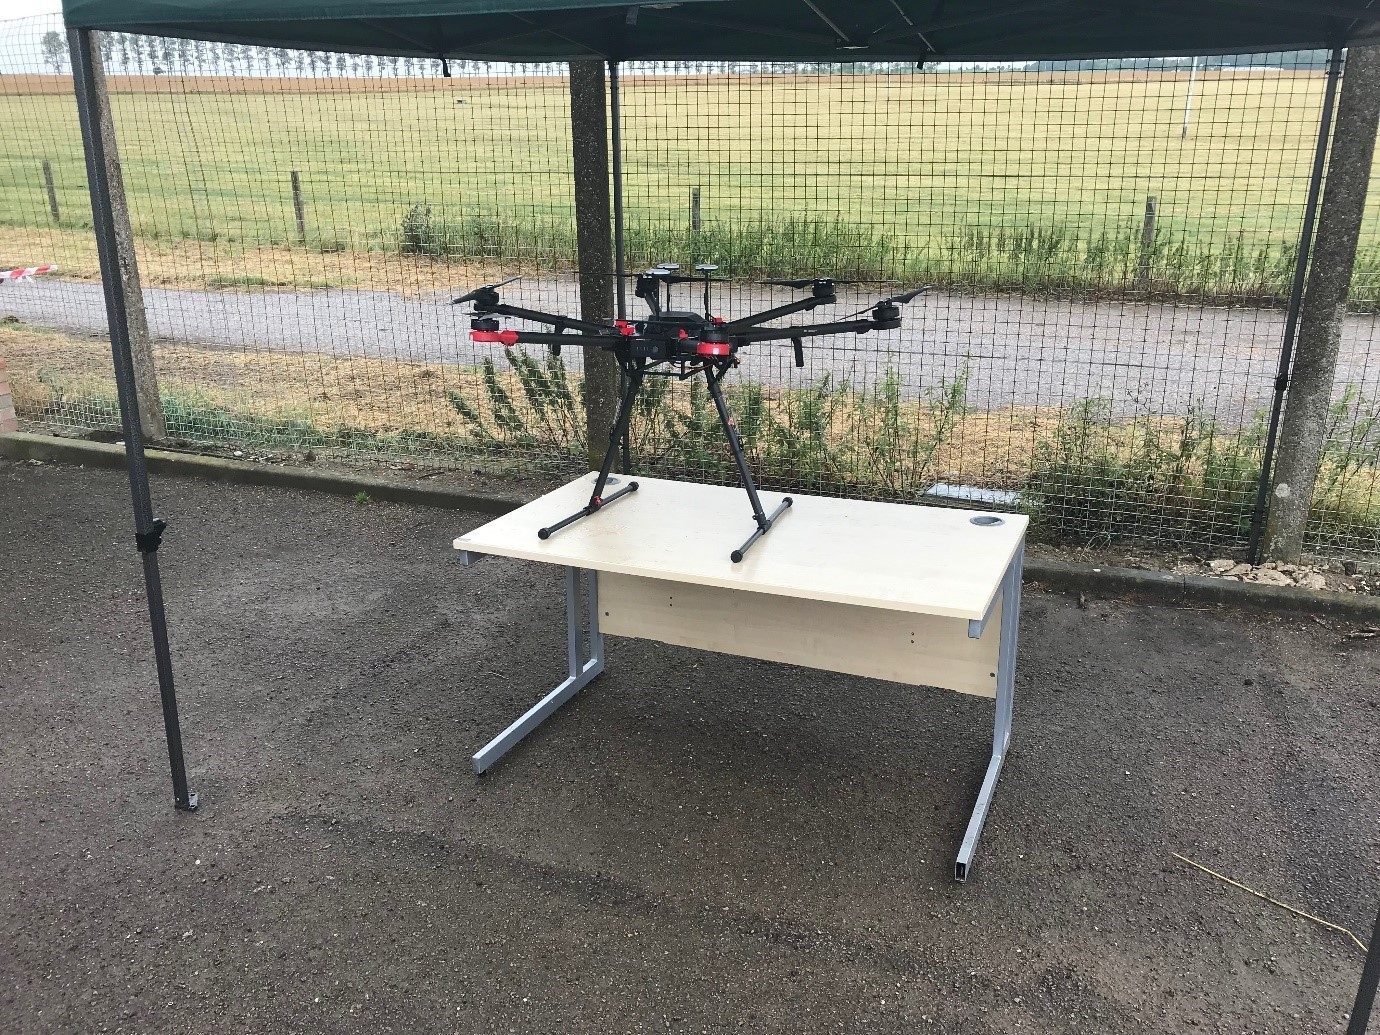 A drone stands atop a desk, outdoors but under cover. It is on display.